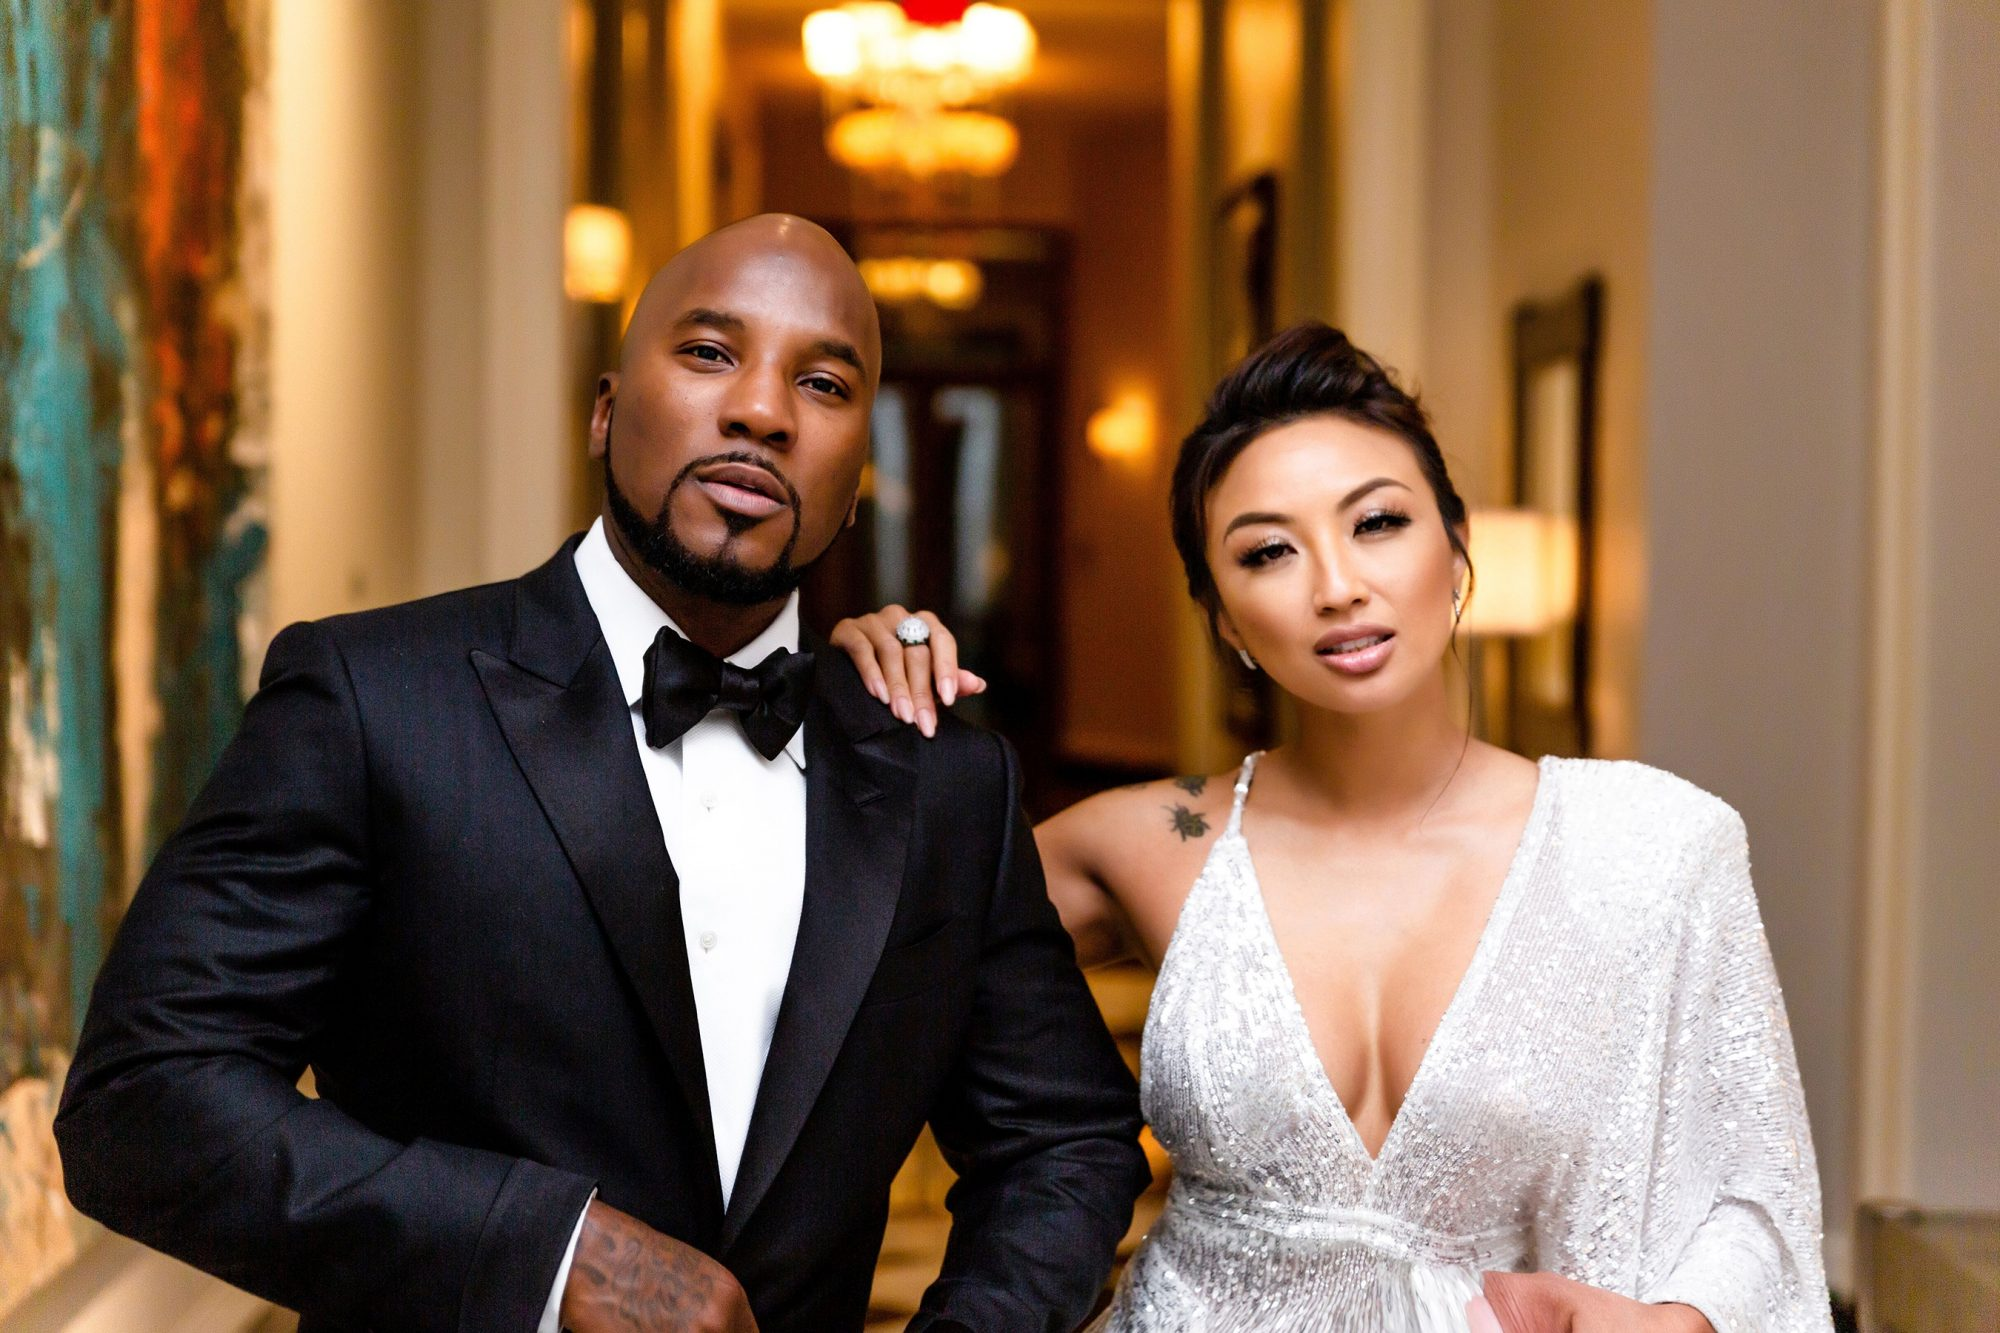 The Real's Jeannie Mai is Dating Rapper Jeezy